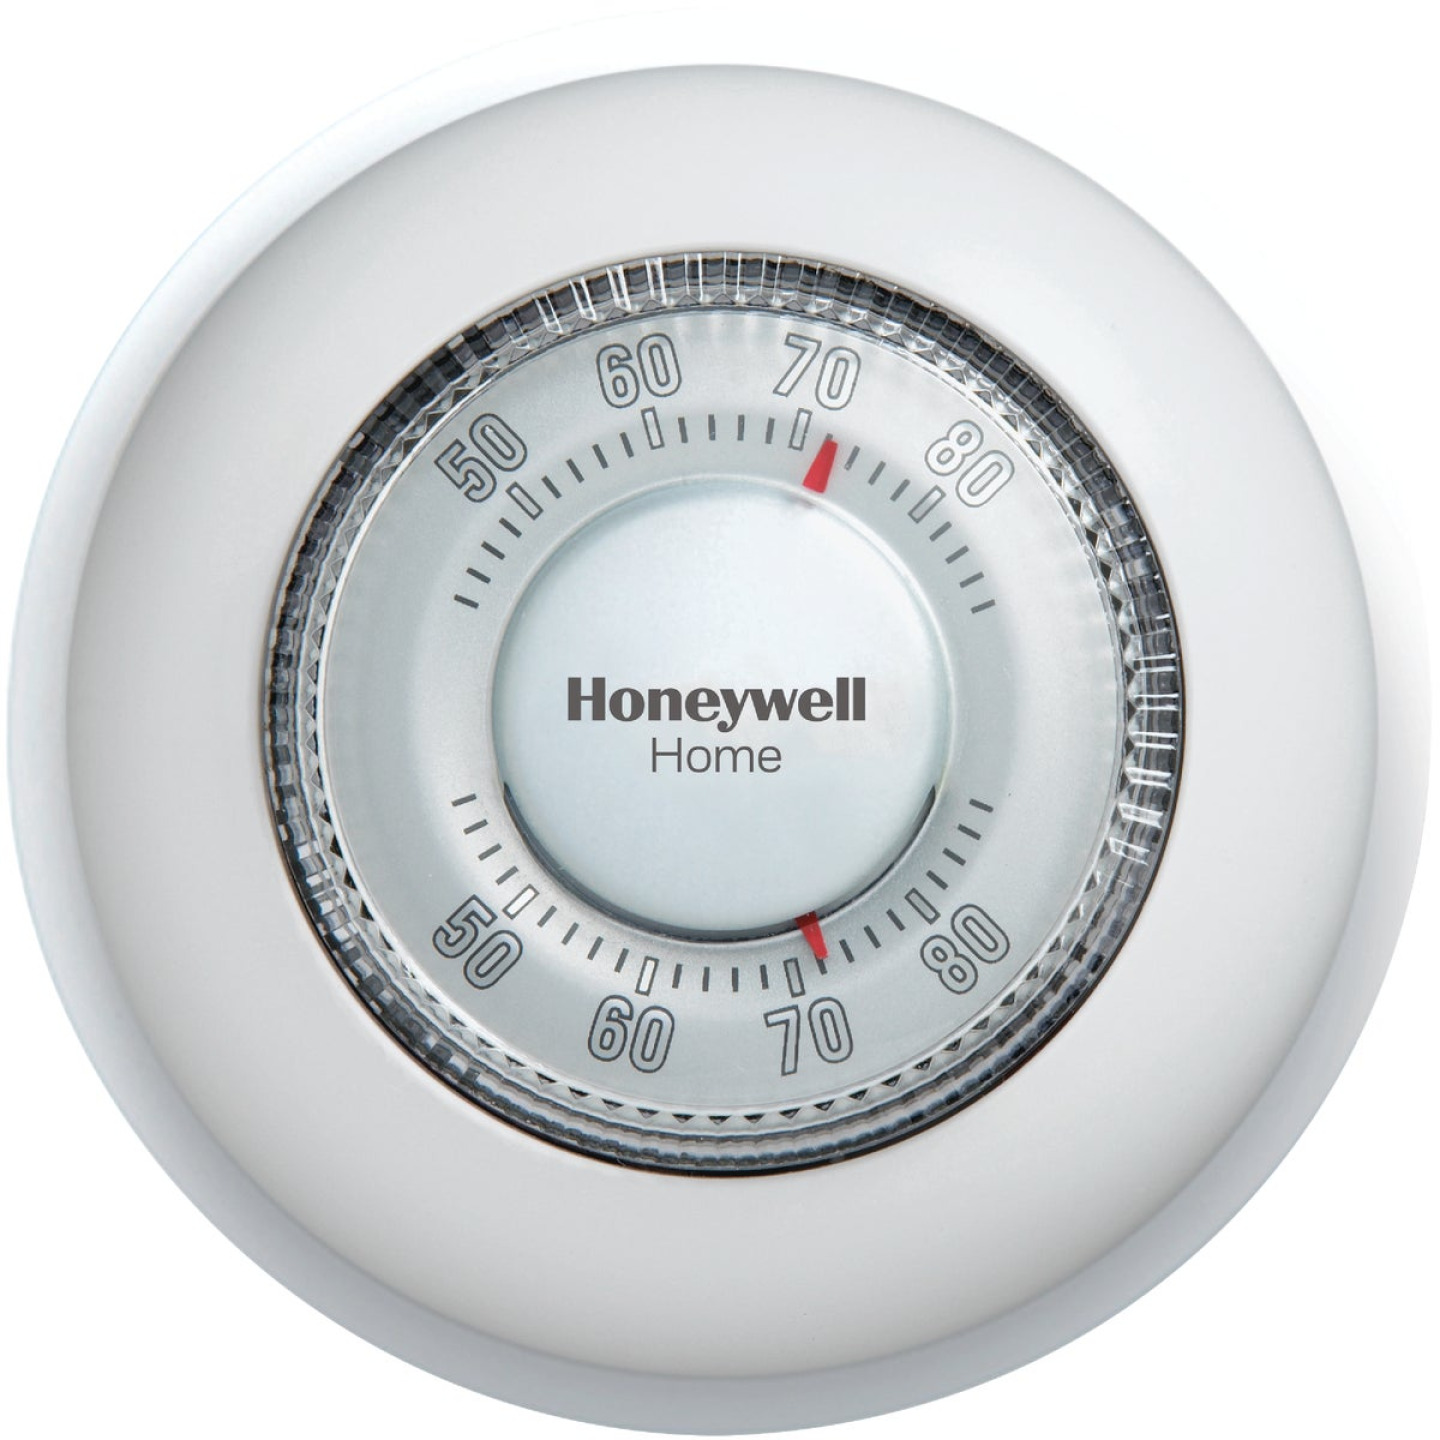 Honeywell Heat Only Off White Round Wall Thermostat Image 1